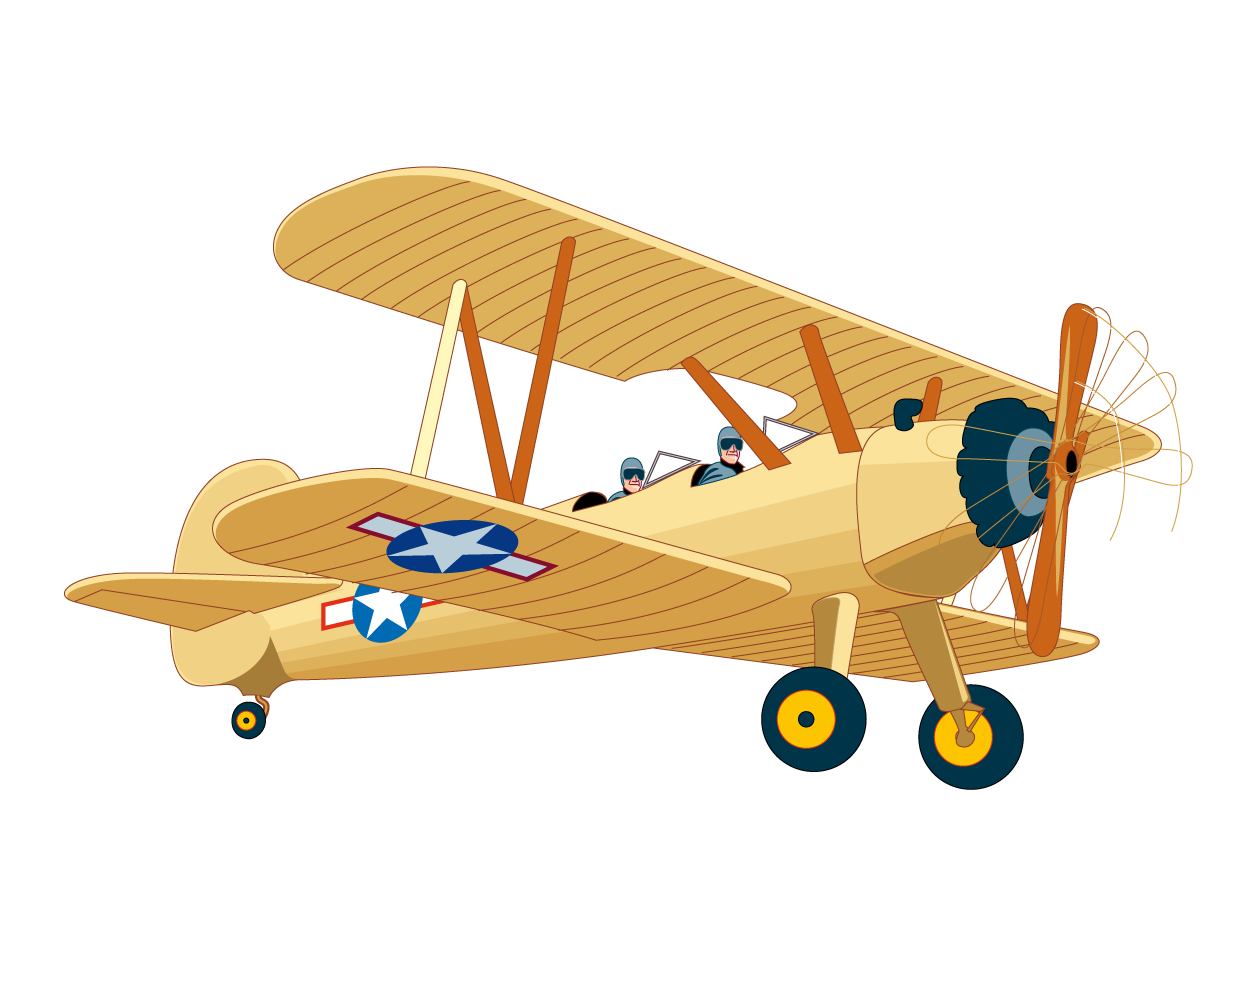 Pilot clipart antique airplane. Pin by angela pastor